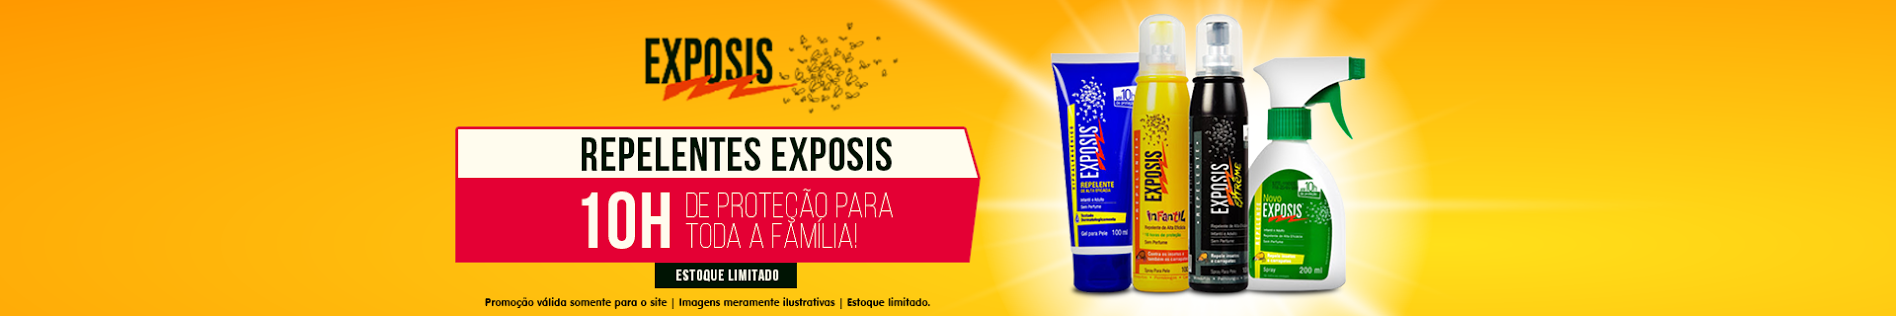 Banner Home - Exposis